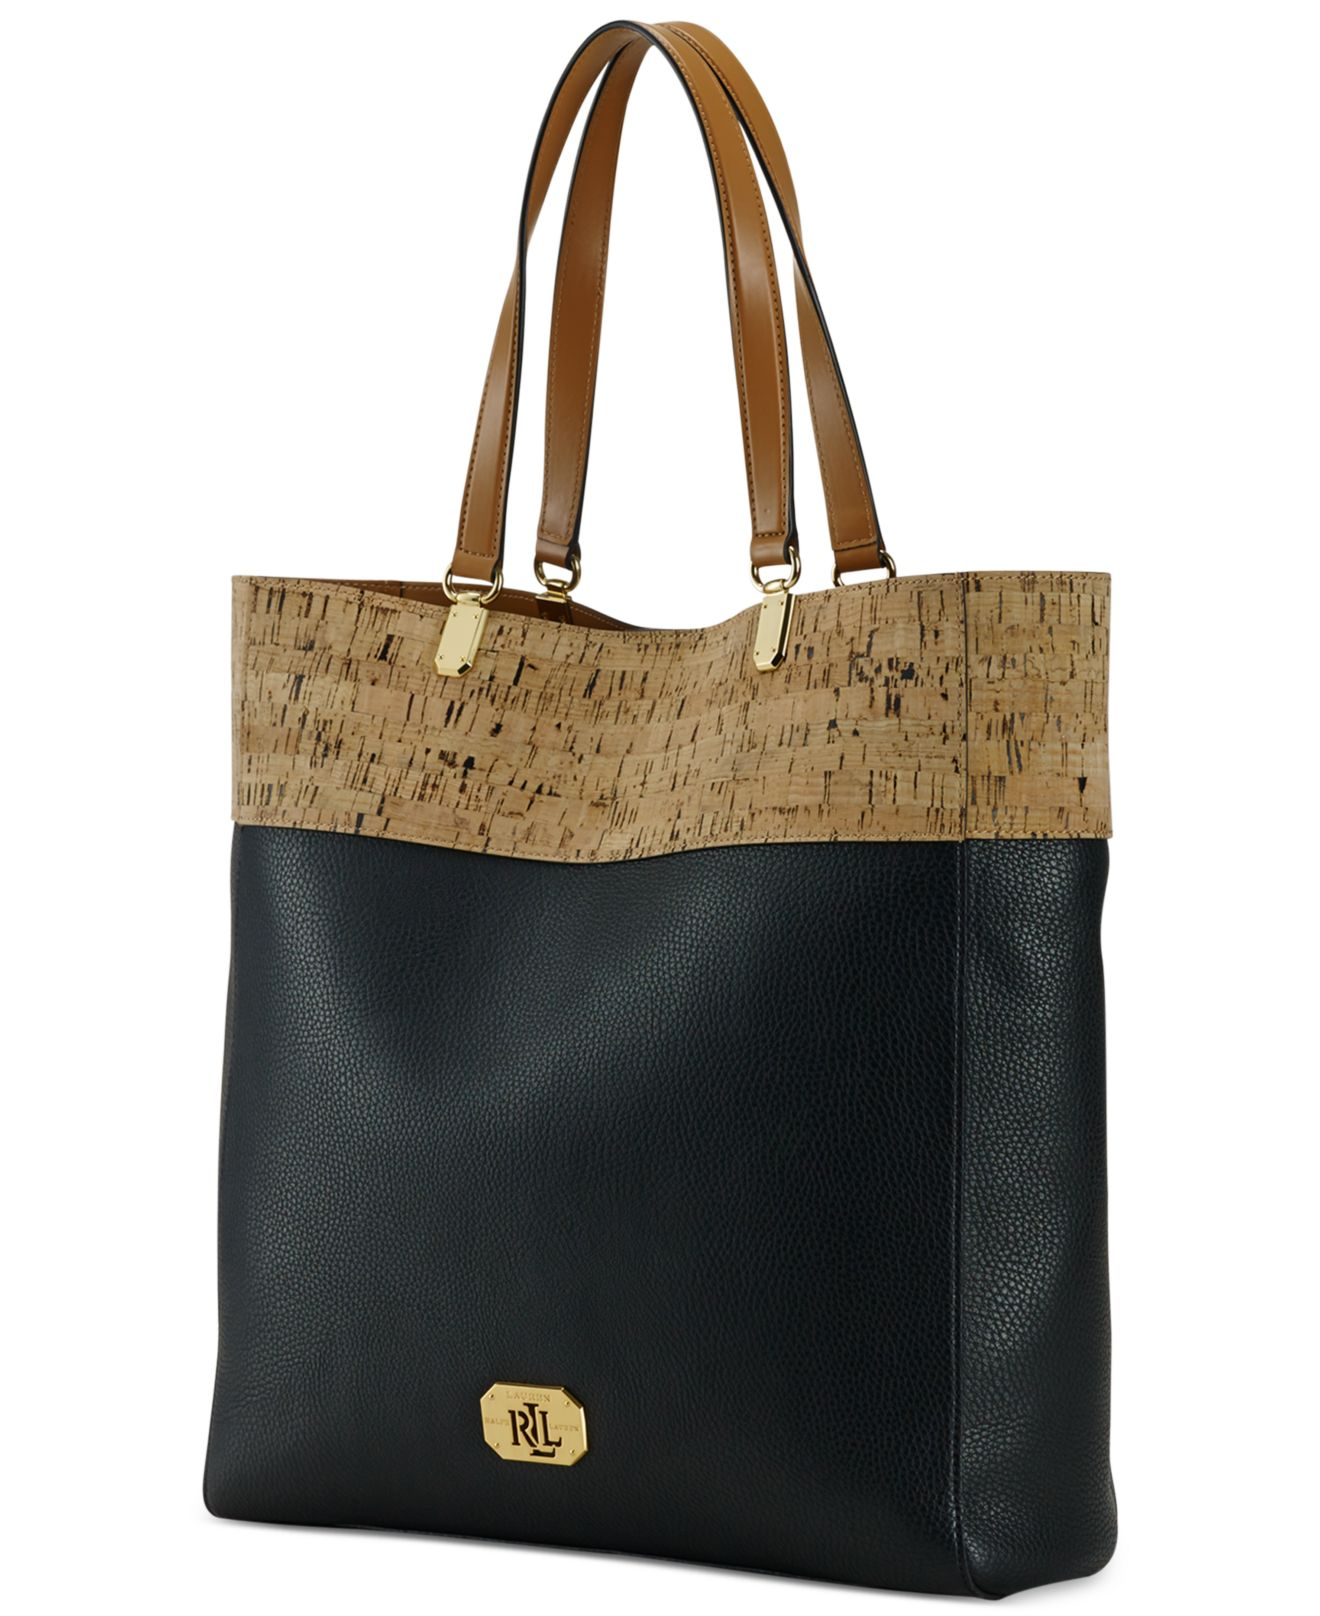 f2a2eca81d Lyst - Lauren by Ralph Lauren Hilford Cork Pattern Tote in Black